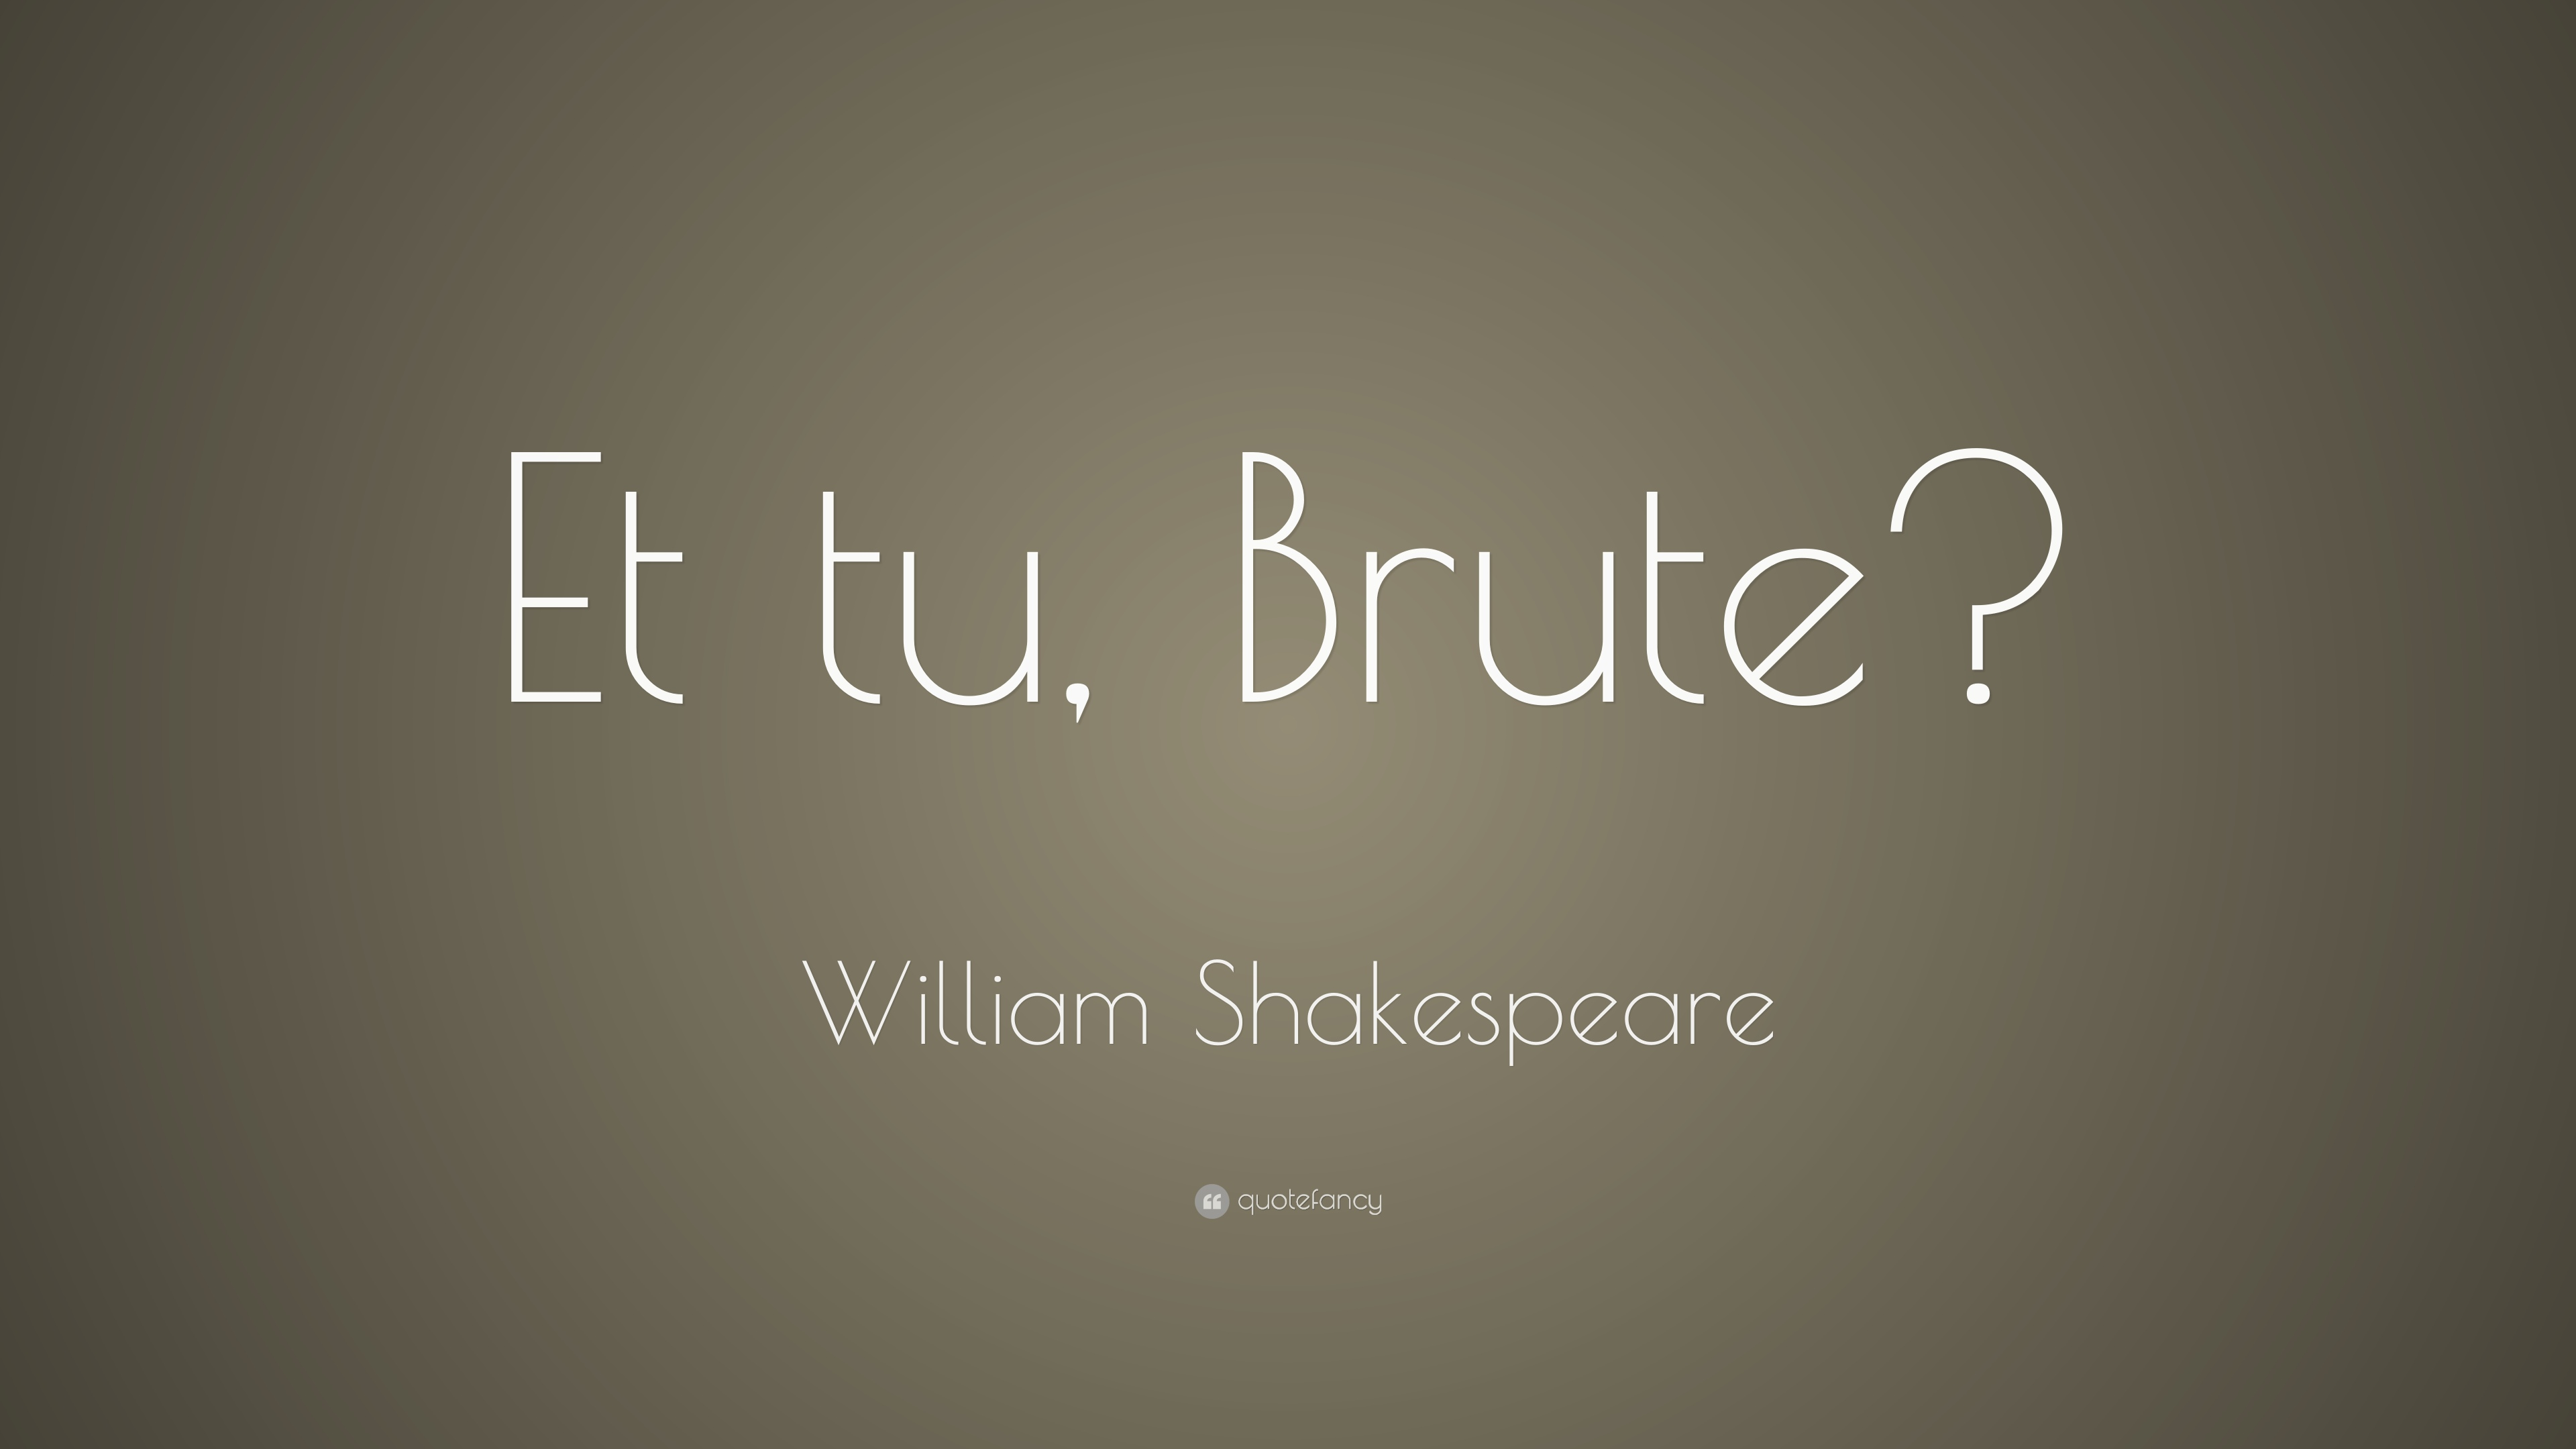 William Shakespeare Love Quotes Wallpaper William Shakespeare Quote Et Tu Brute 16 Wallpapers